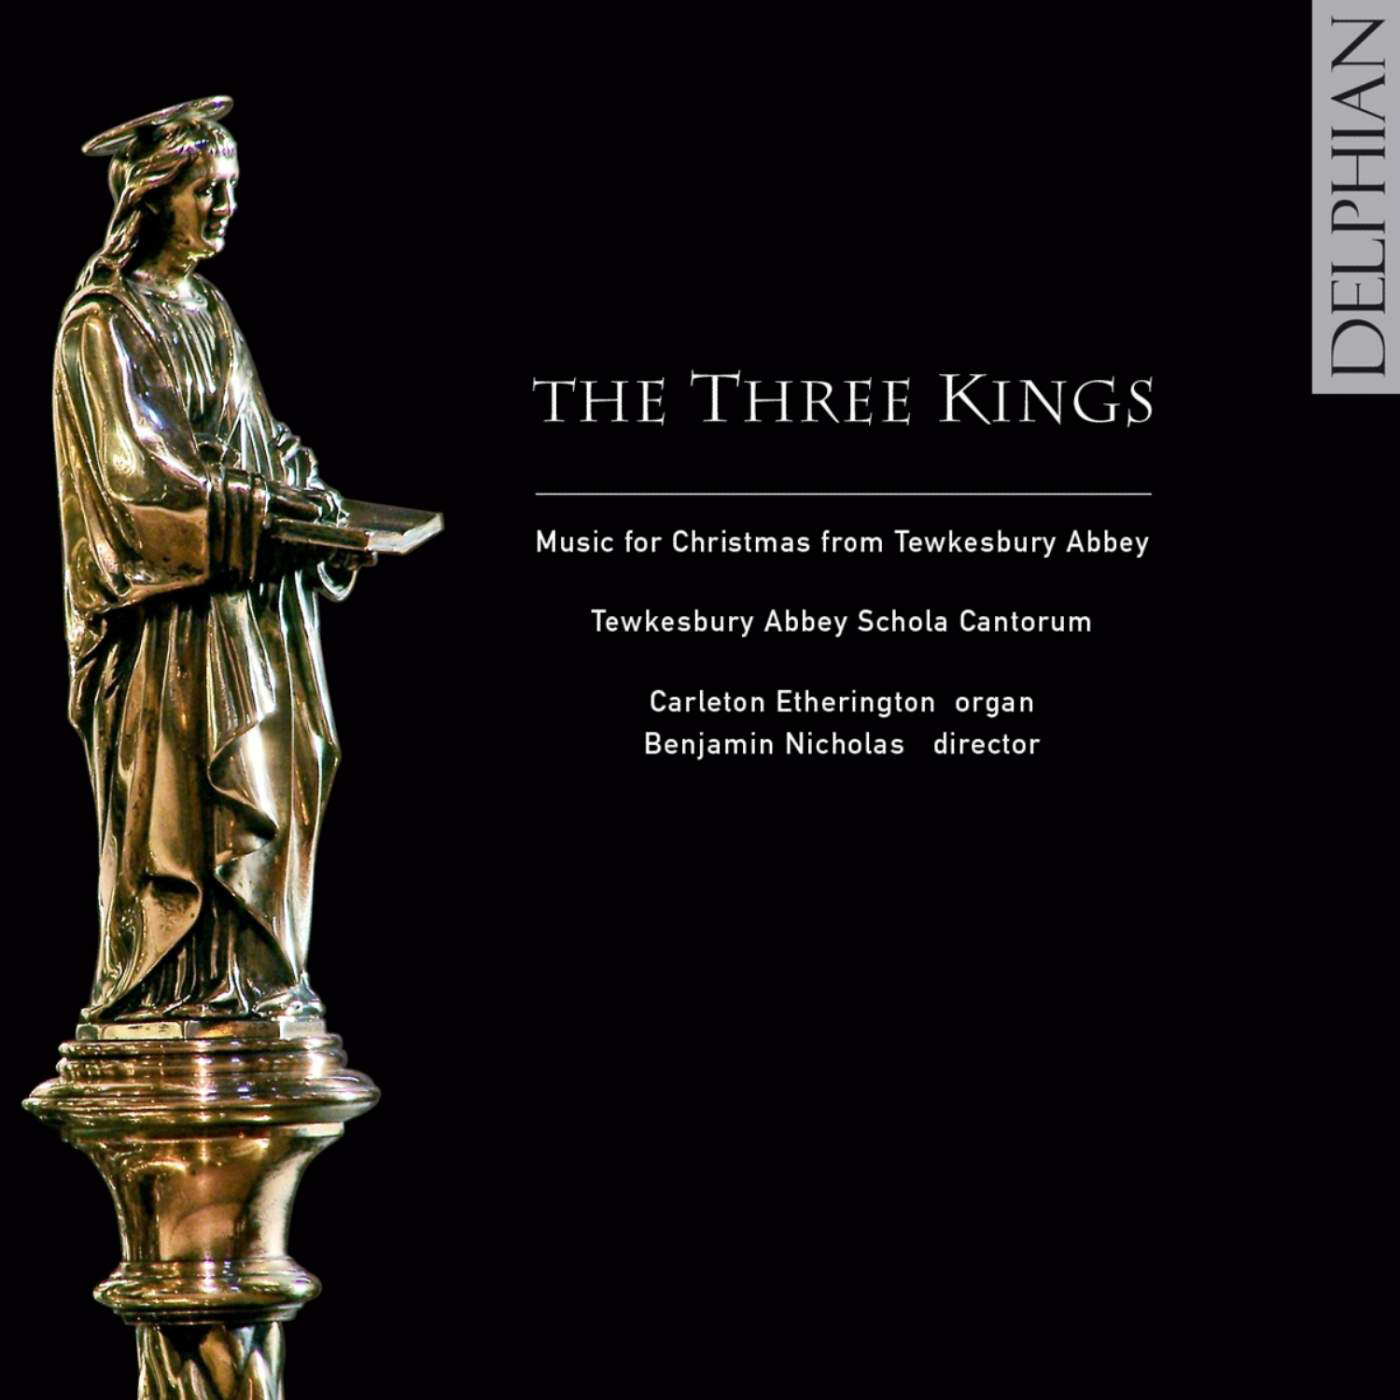 The Three Kings: Music for Christmas from Tewkesbury Abbey